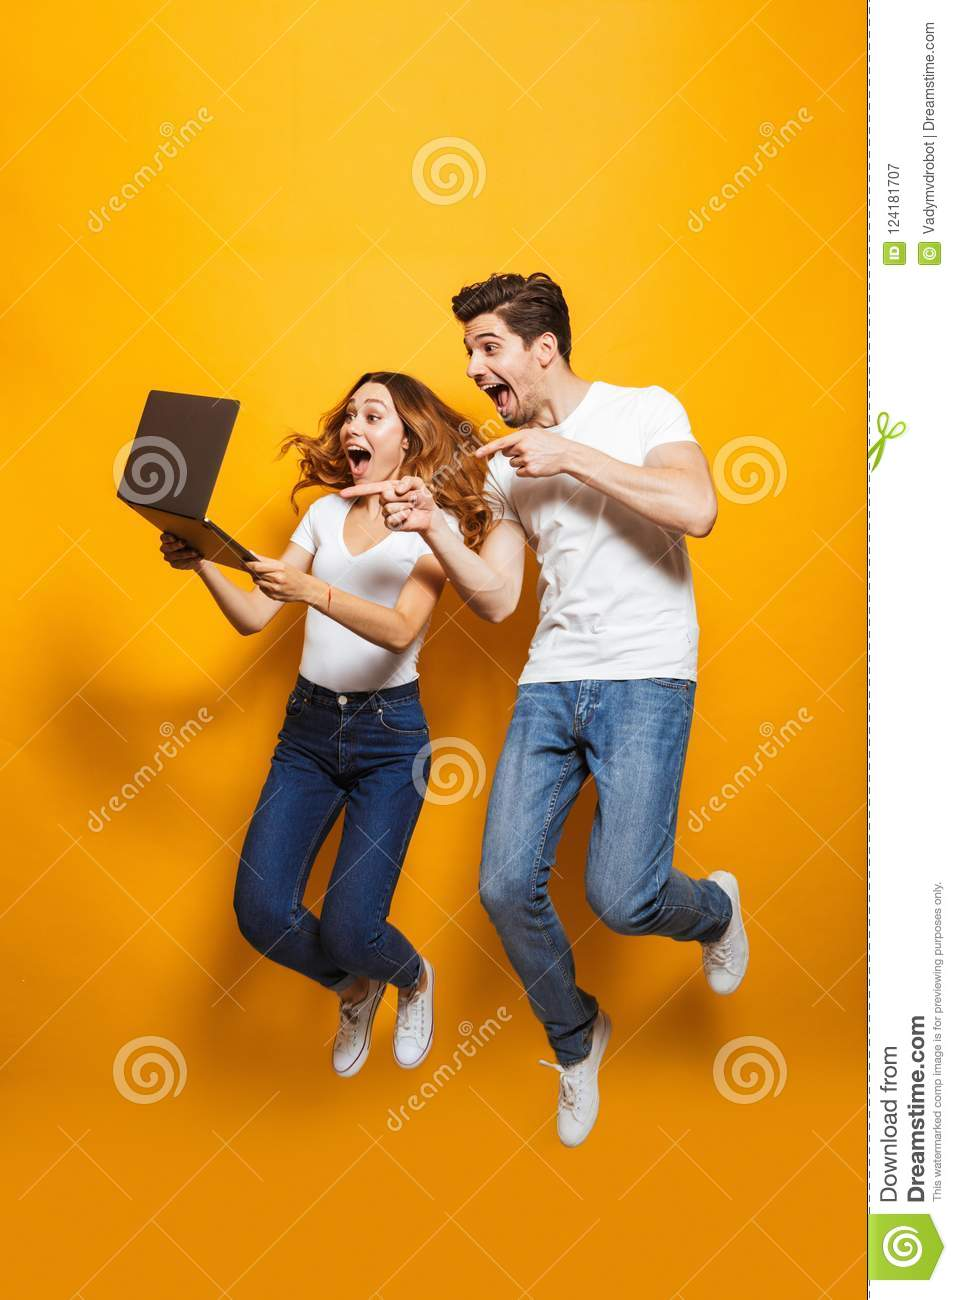 Full length portrait of excited man and woman jumping and using